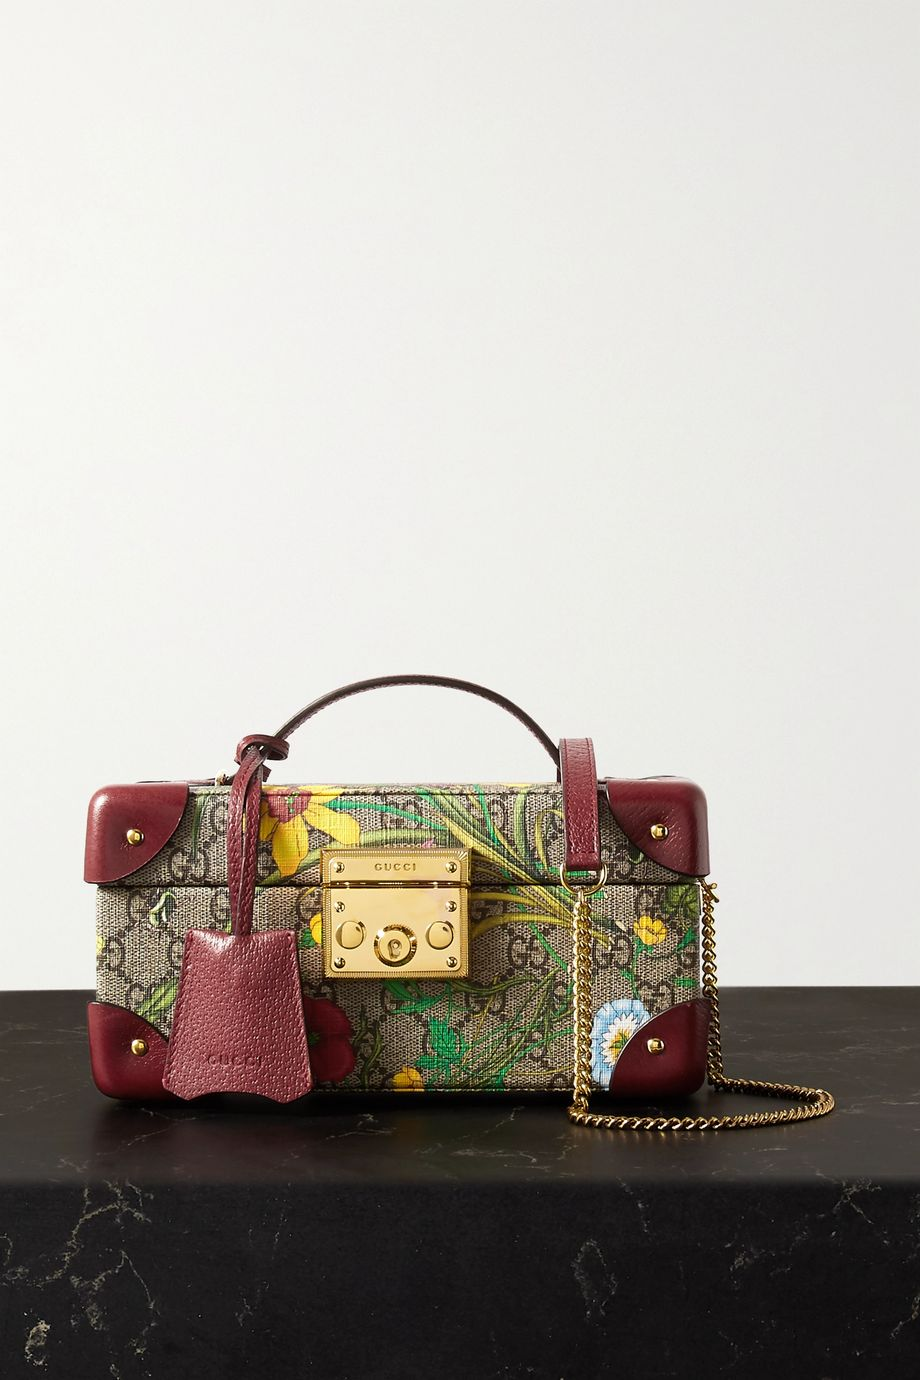 Gucci Textured leather-trimmed printed coated-canvas jewelry box